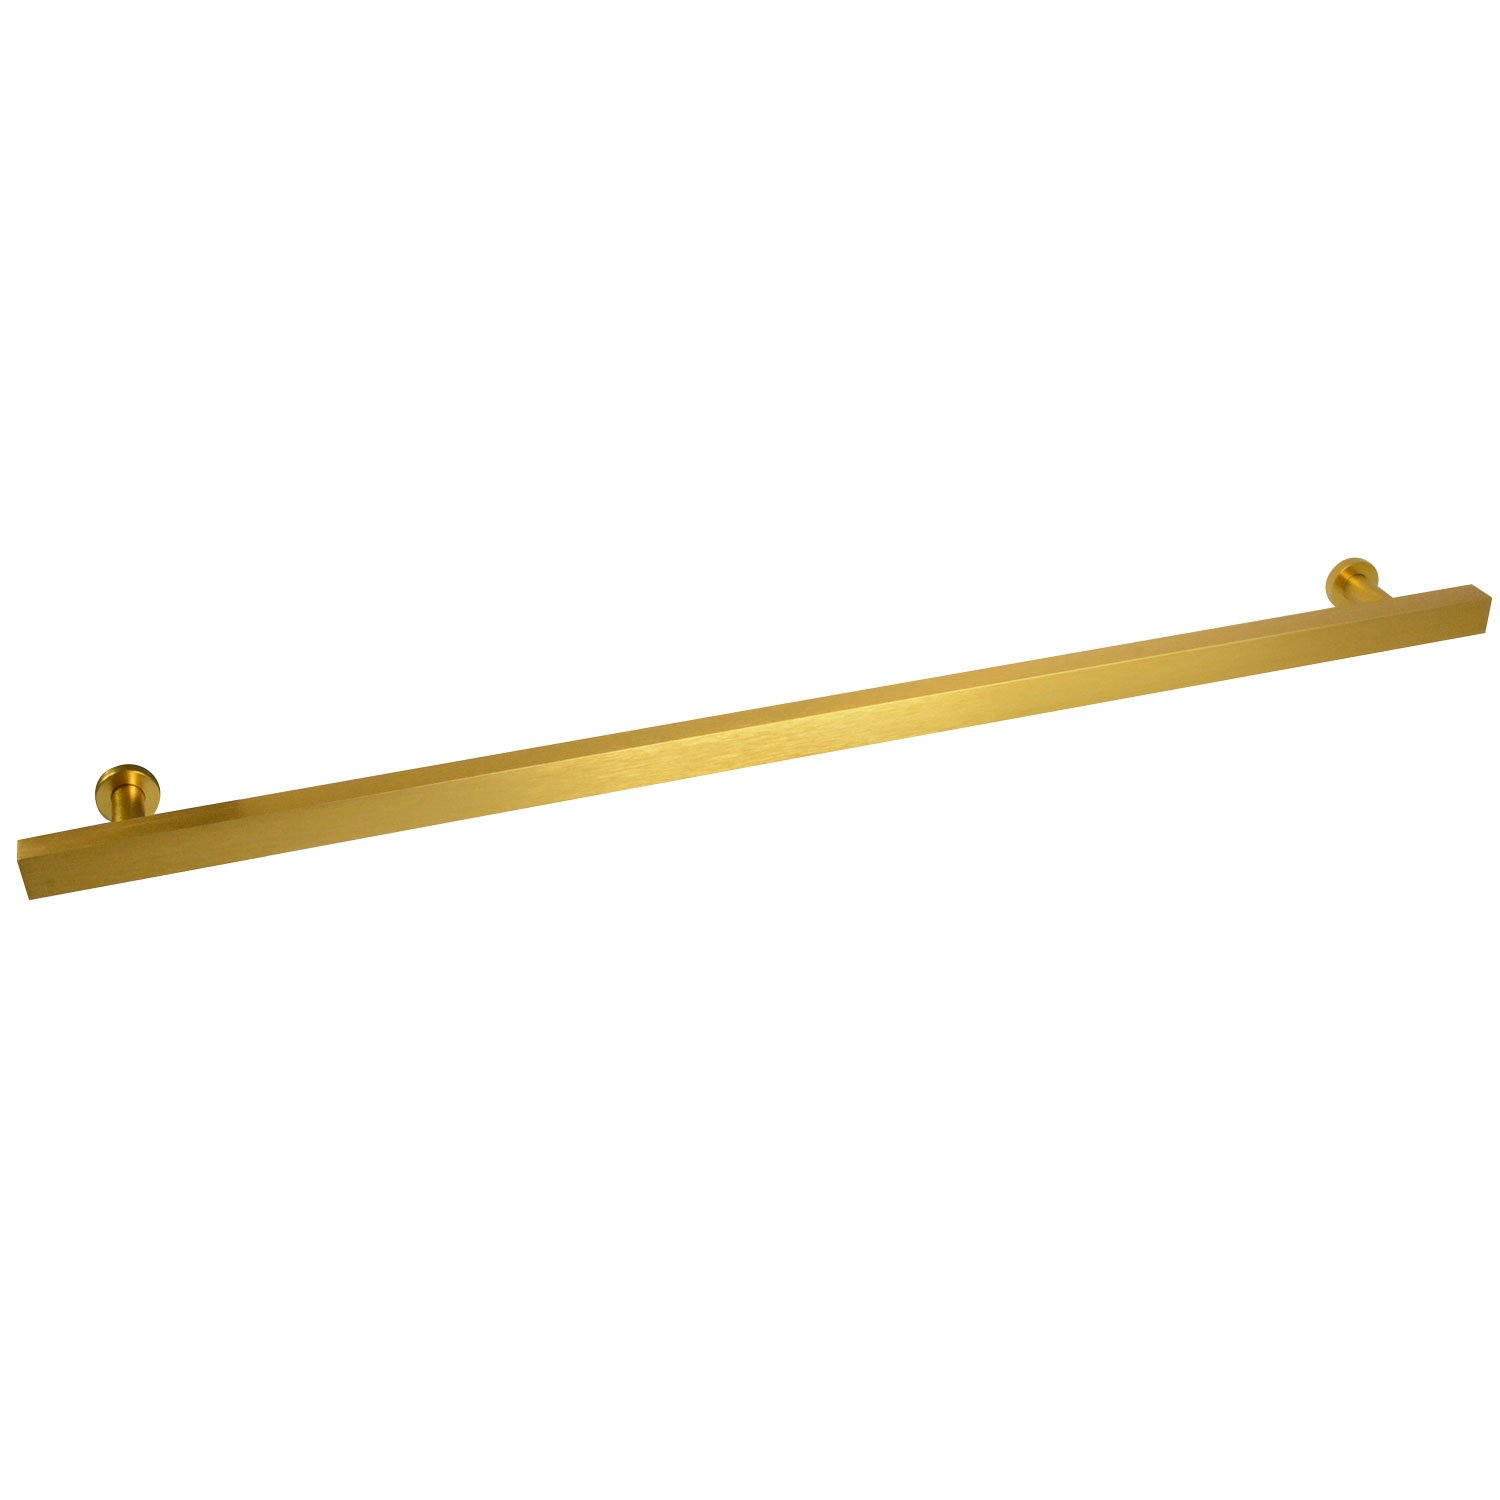 #1600-352 CKP Brand Linear Aluminum Pull, Brushed Gold